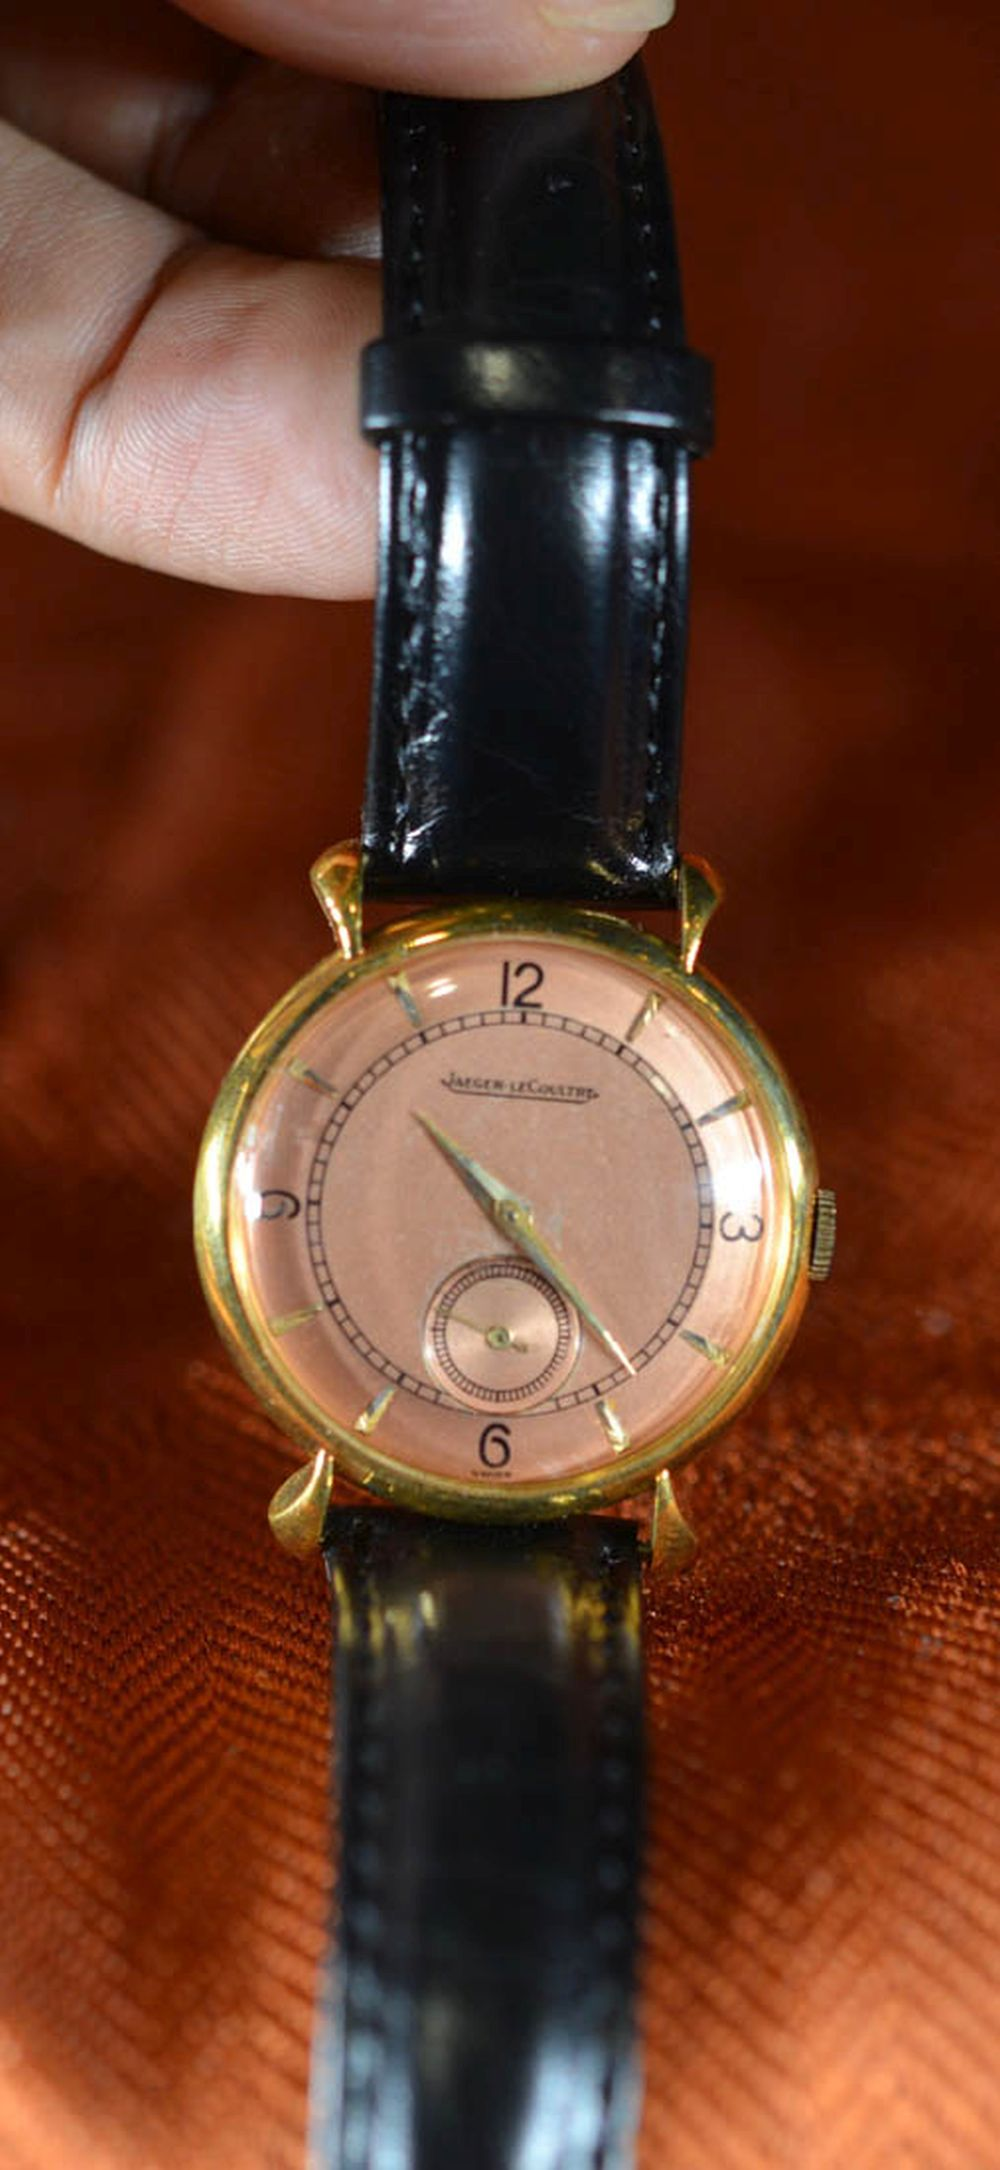 Jager lecoultre Gold Watch